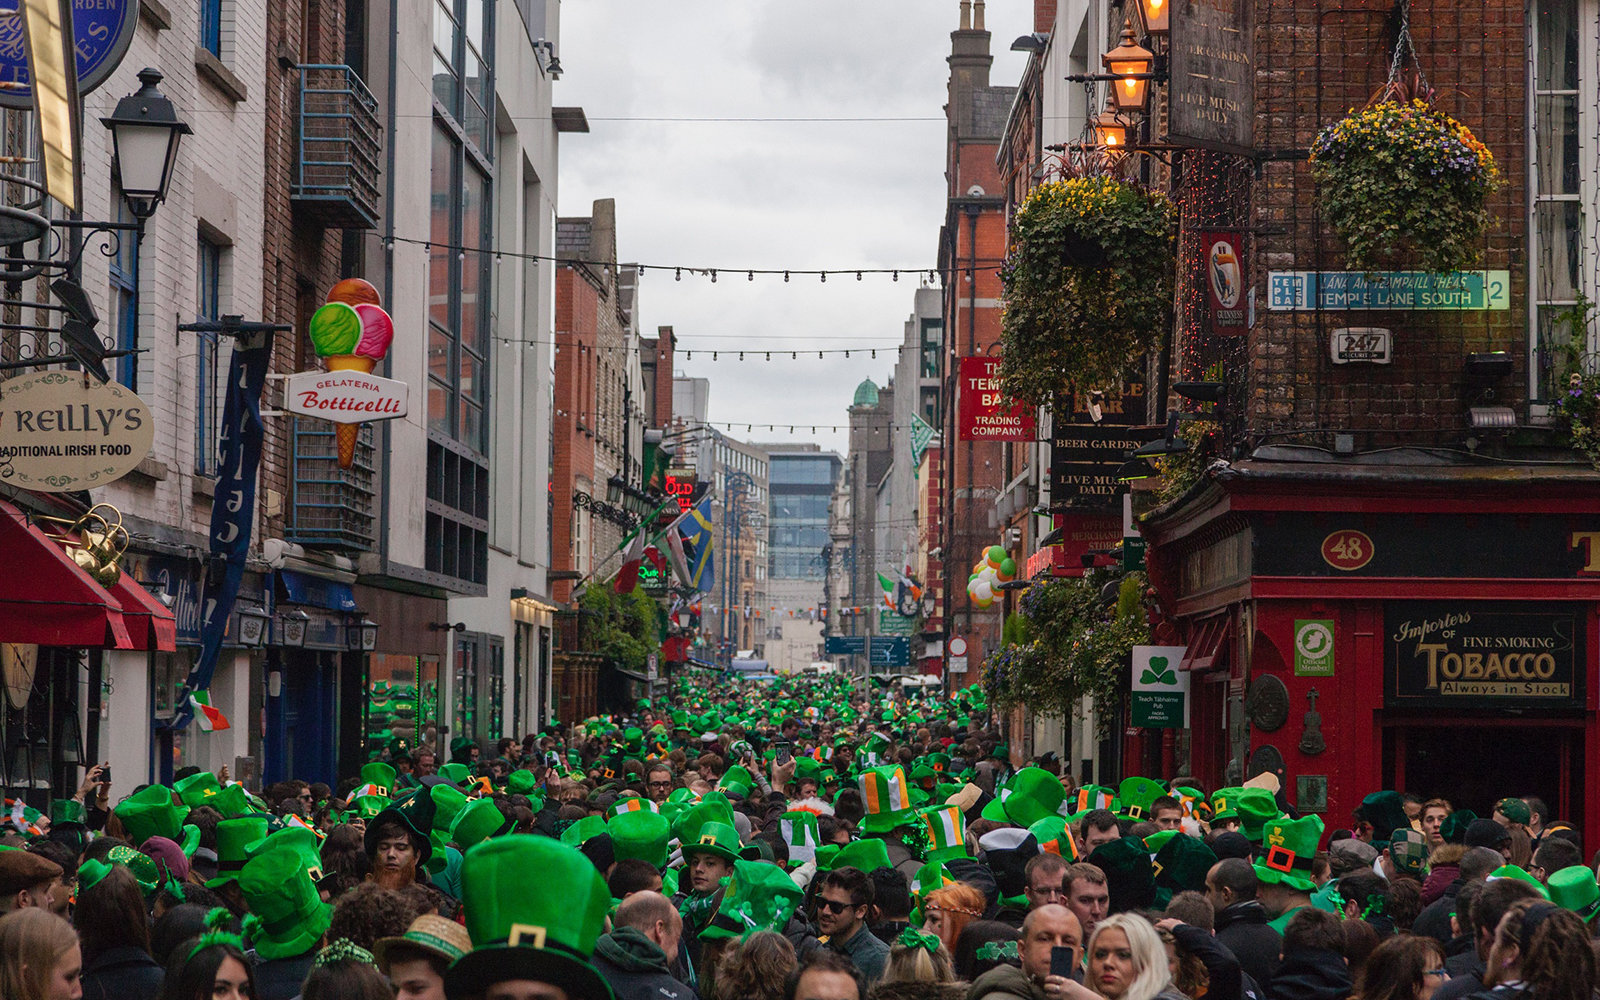 St. Patrick's Day in Dublin. Image: Getty Images